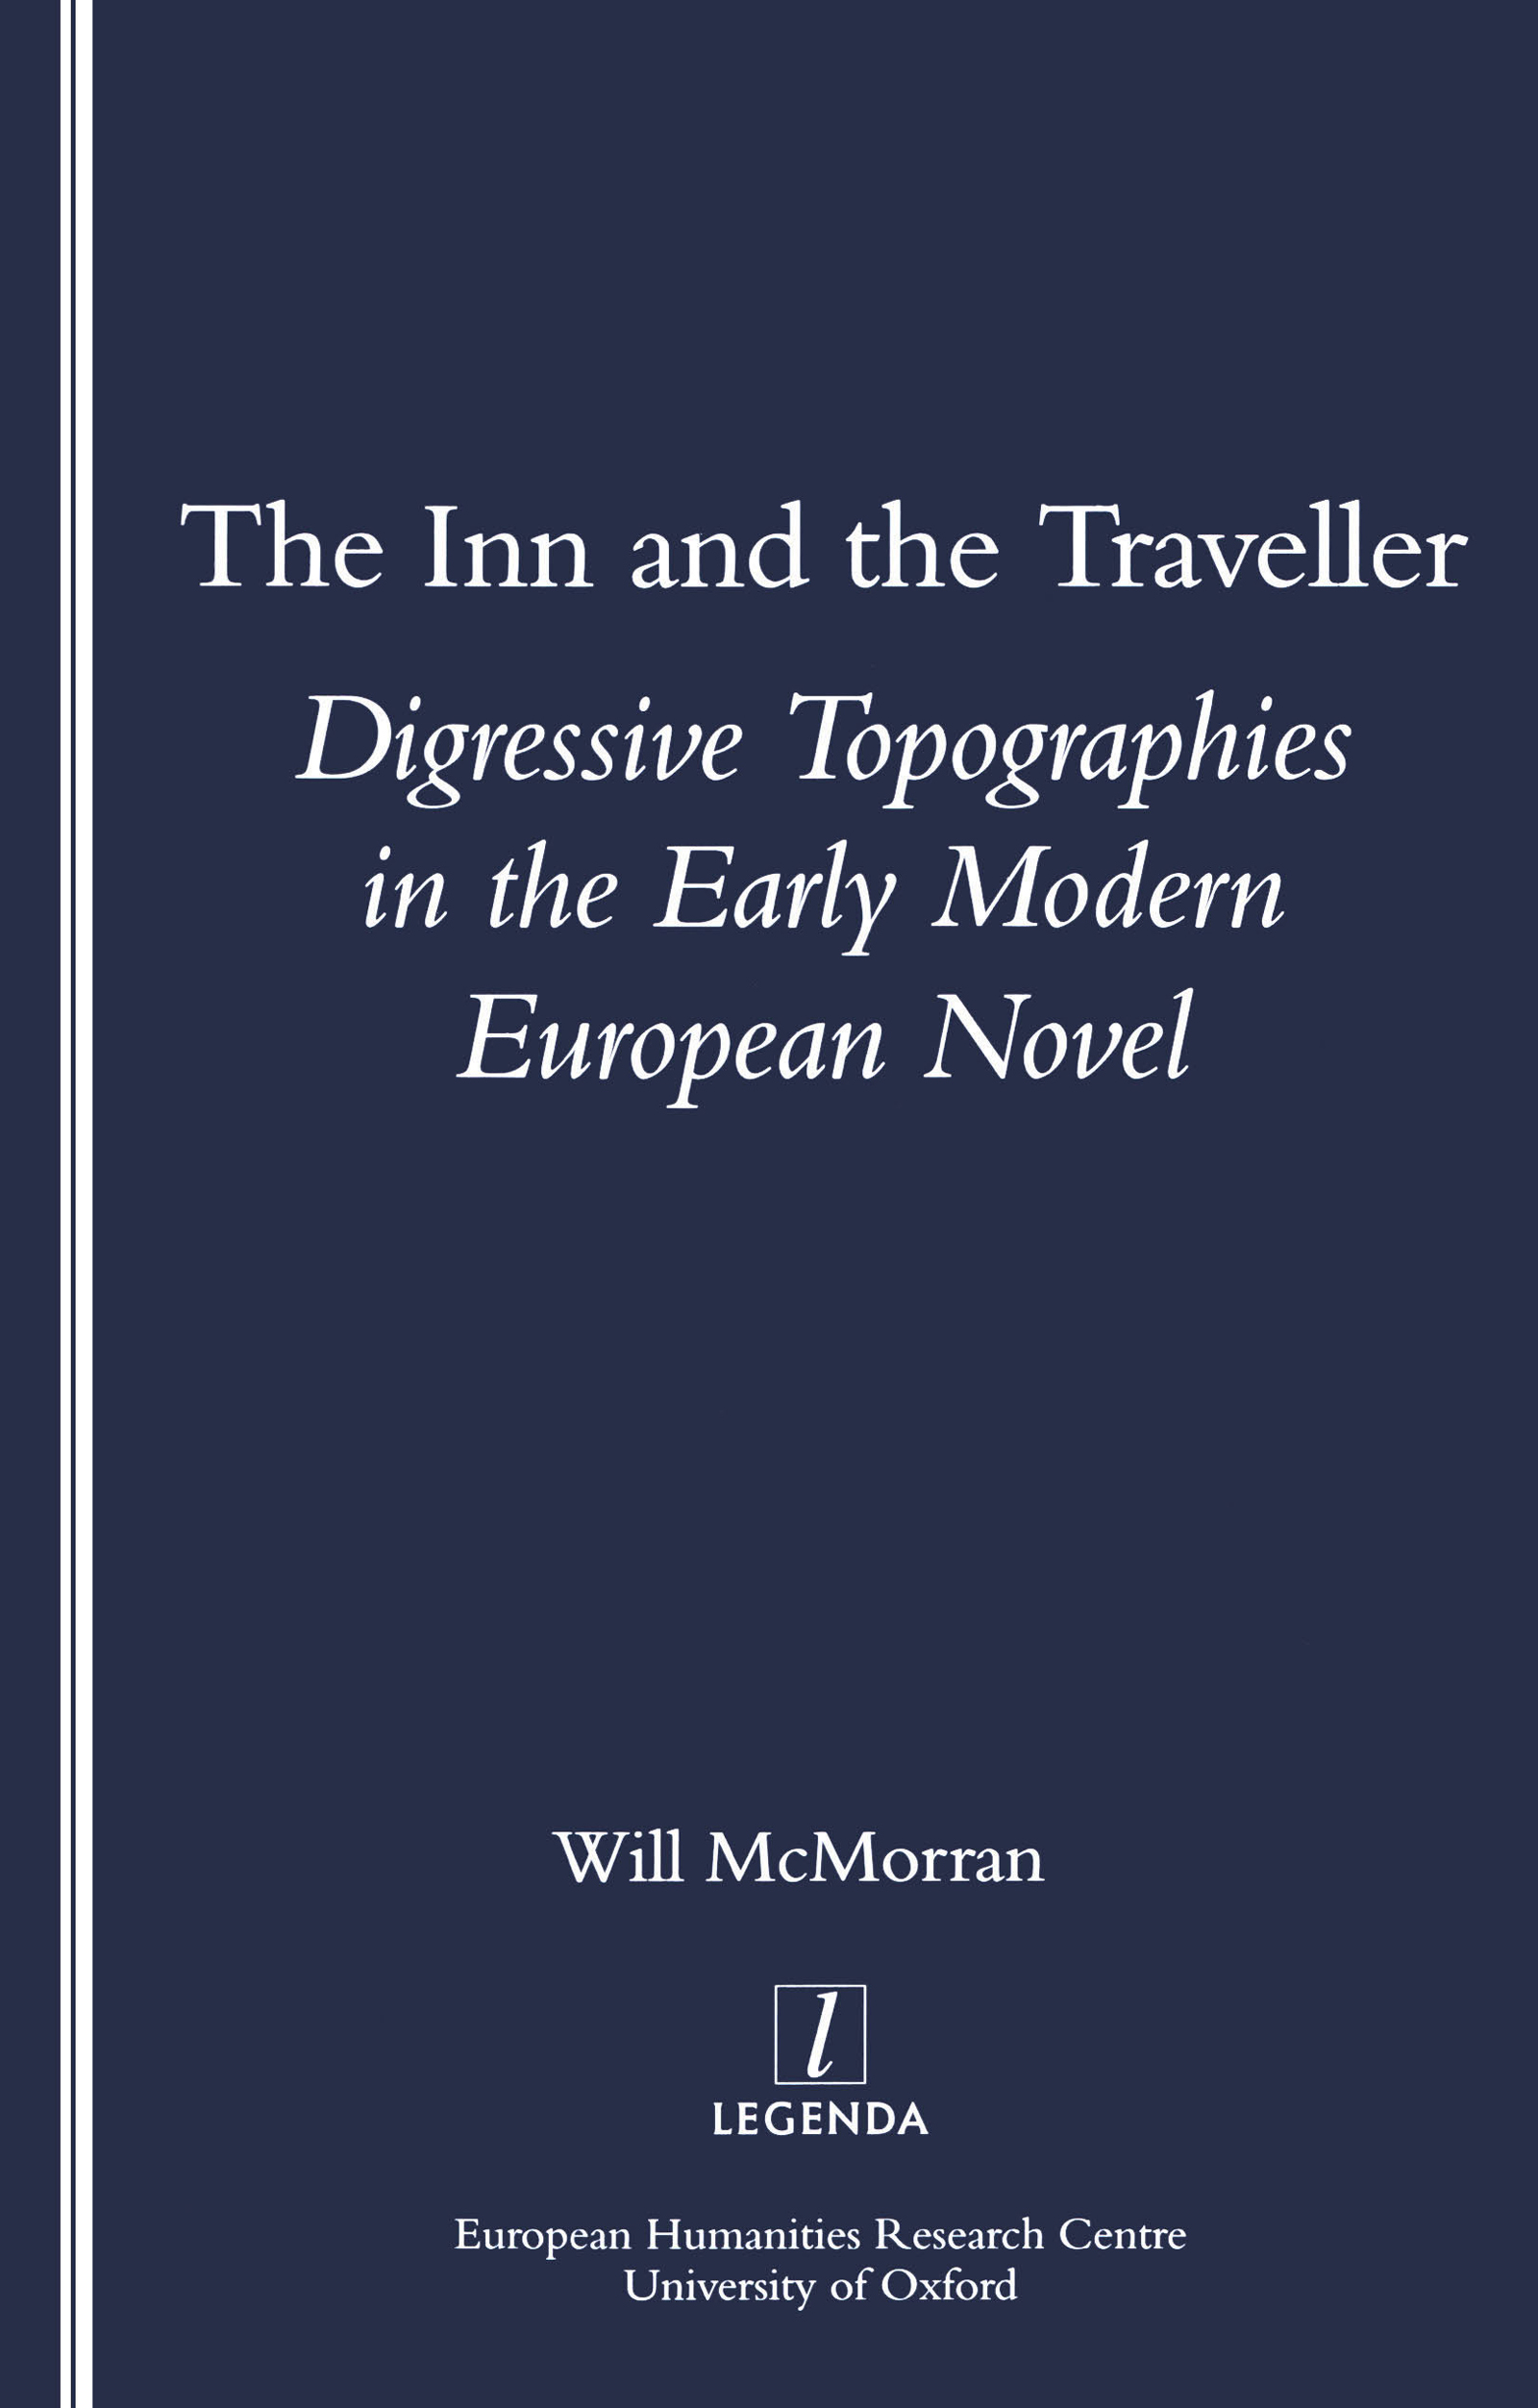 The Inn and the Traveller: Digressive Topographies in the Early Modern European Novel, 1st Edition (Paperback) book cover